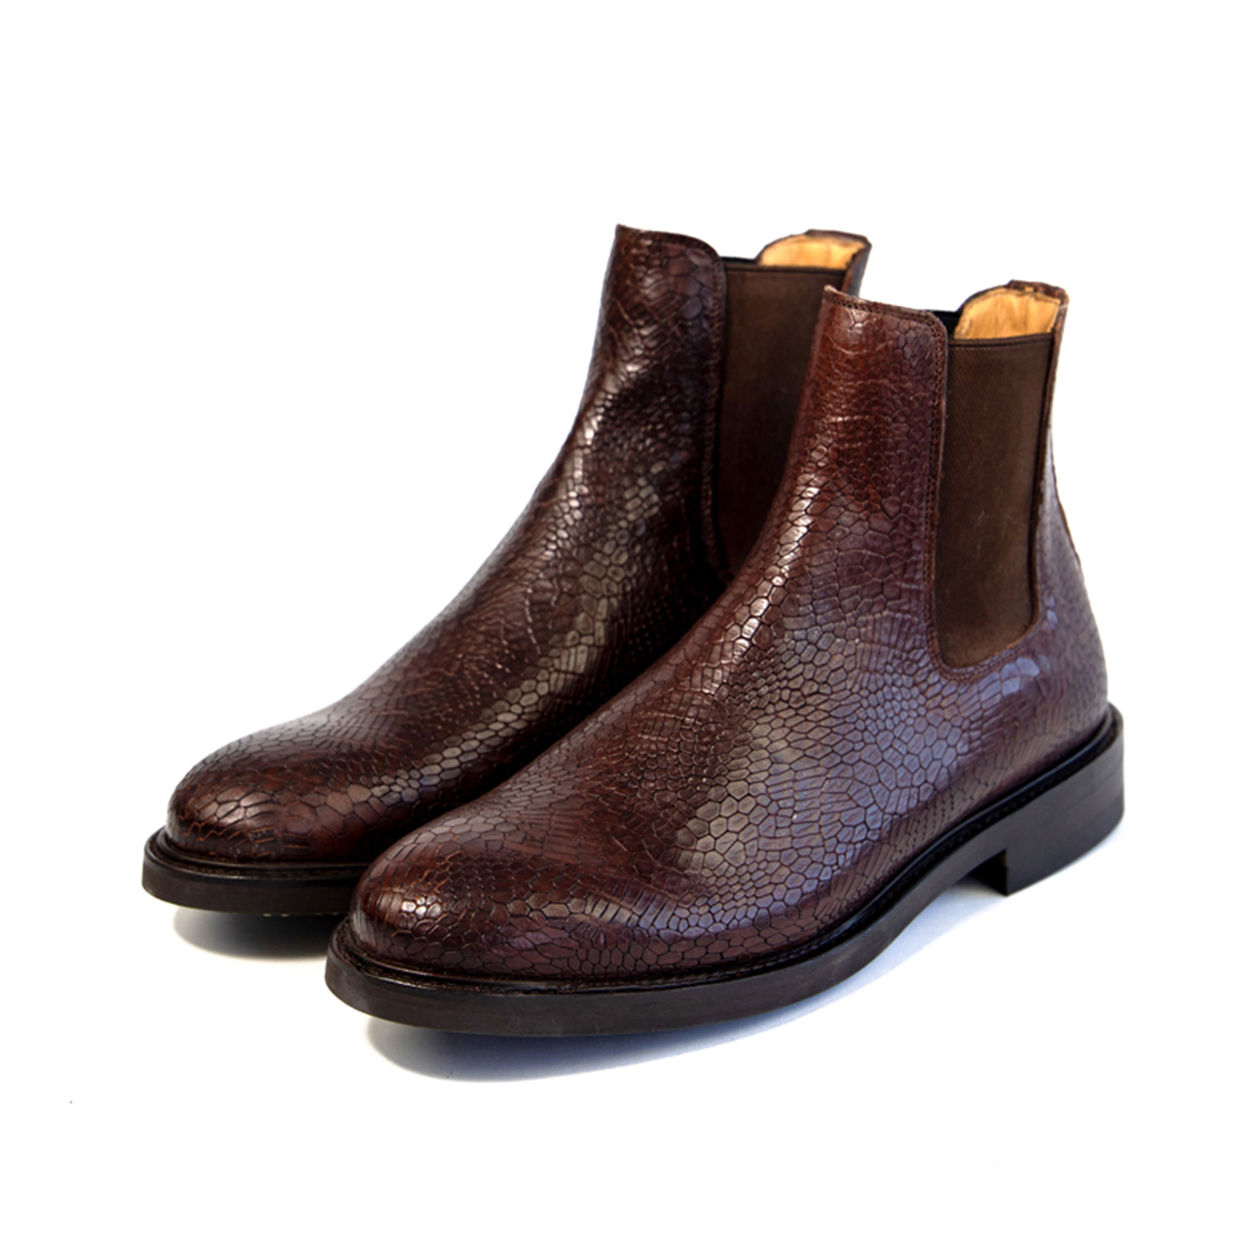 Brown Goodyear welted Chelsea boots